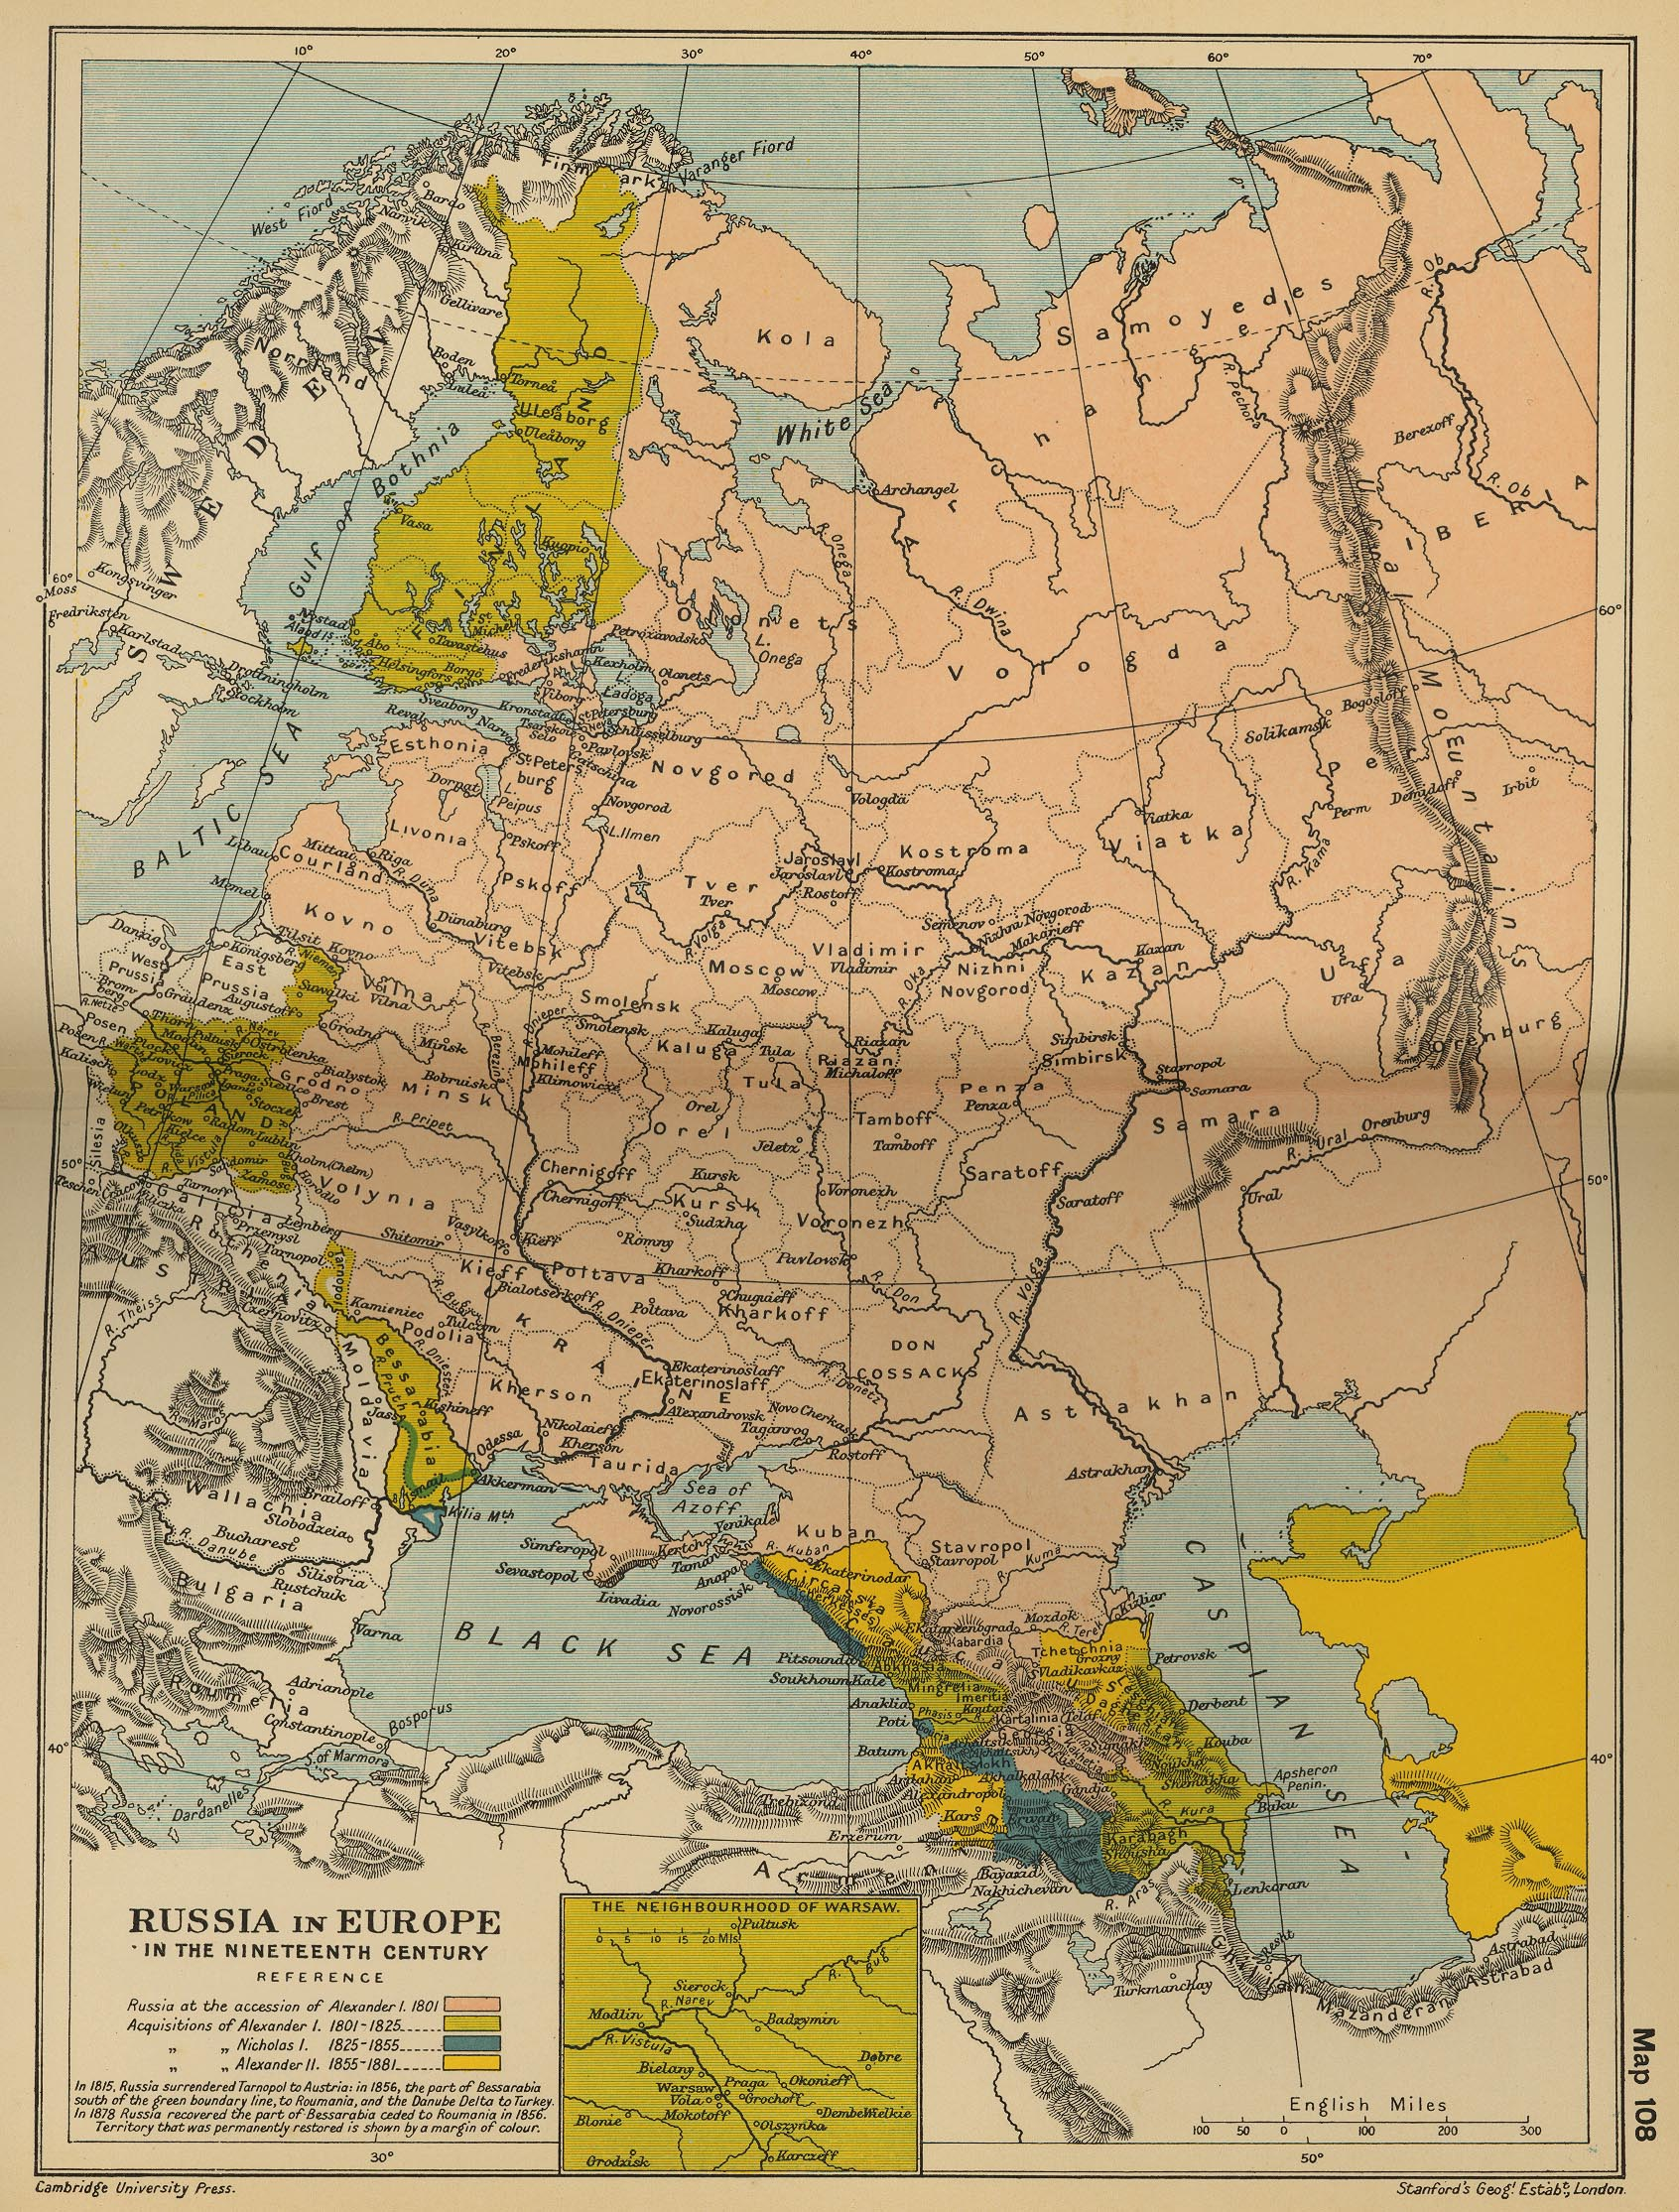 Map Of Russia In Europe Th Century - Map of russia